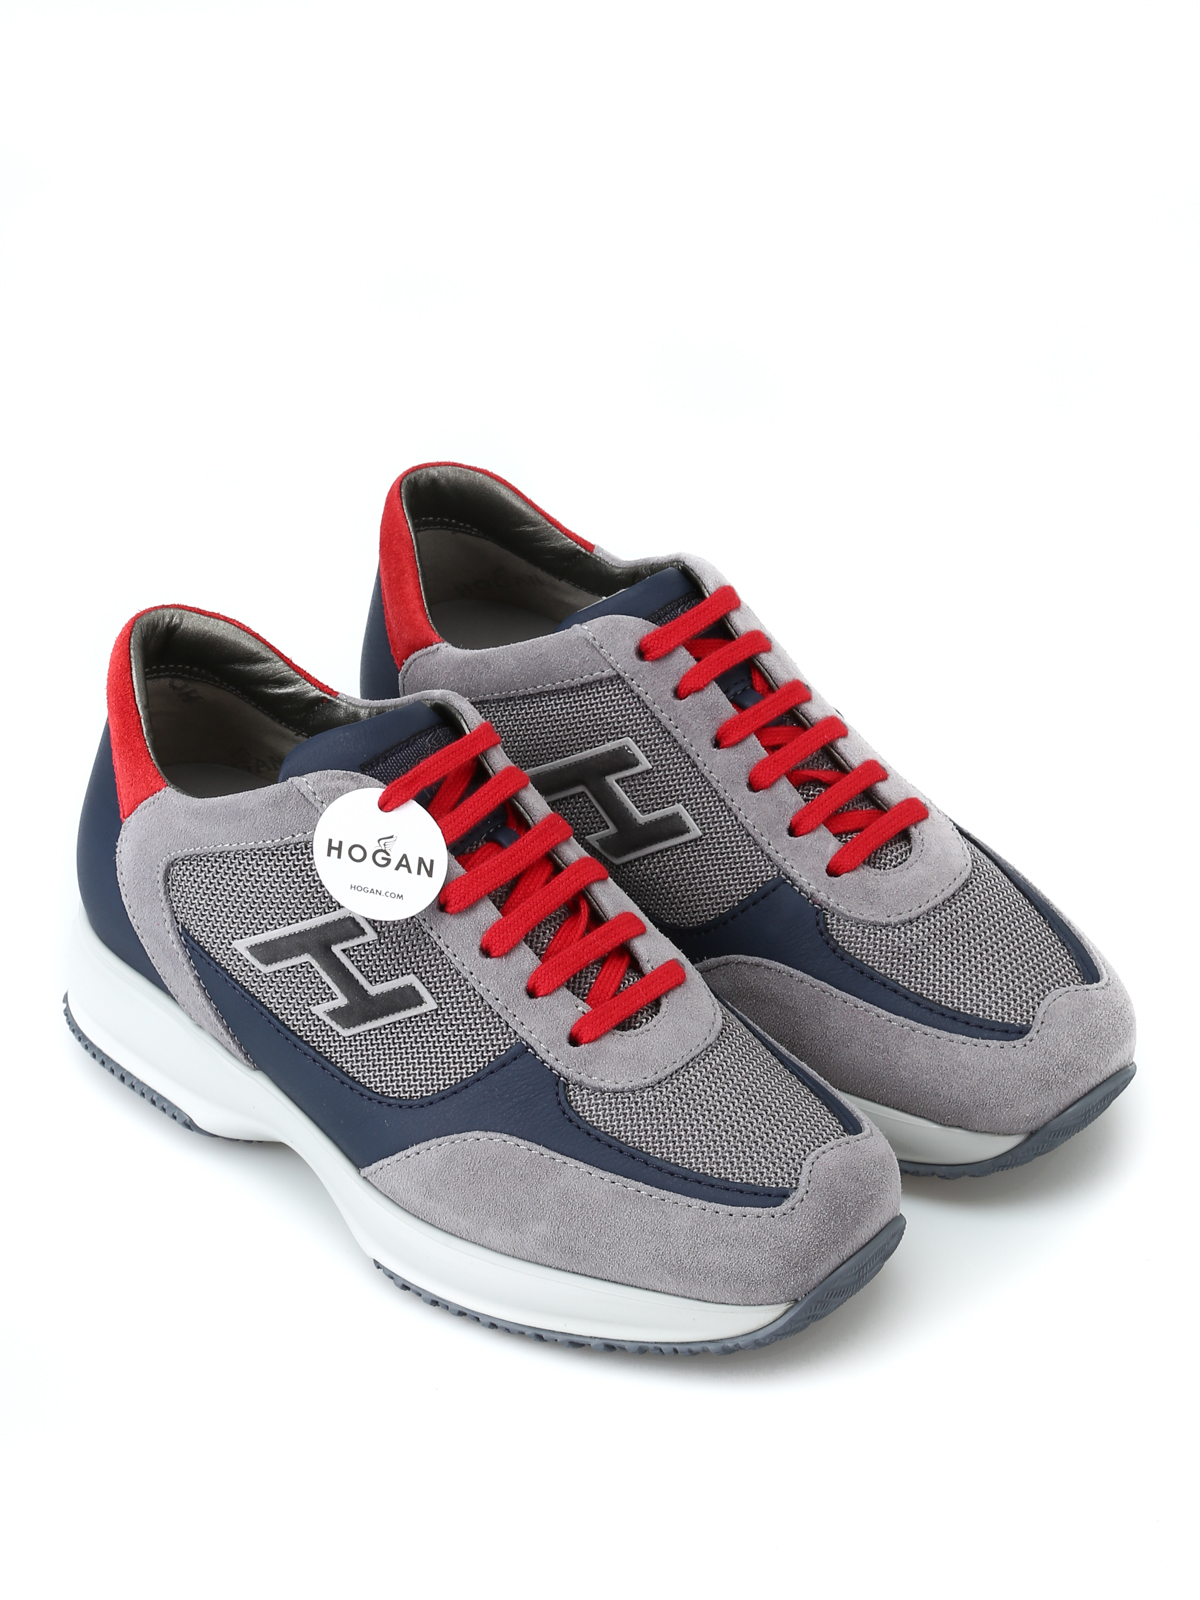 9effc34e11db HOGAN  trainers online - New Interactive H Flock grey and red sneakers